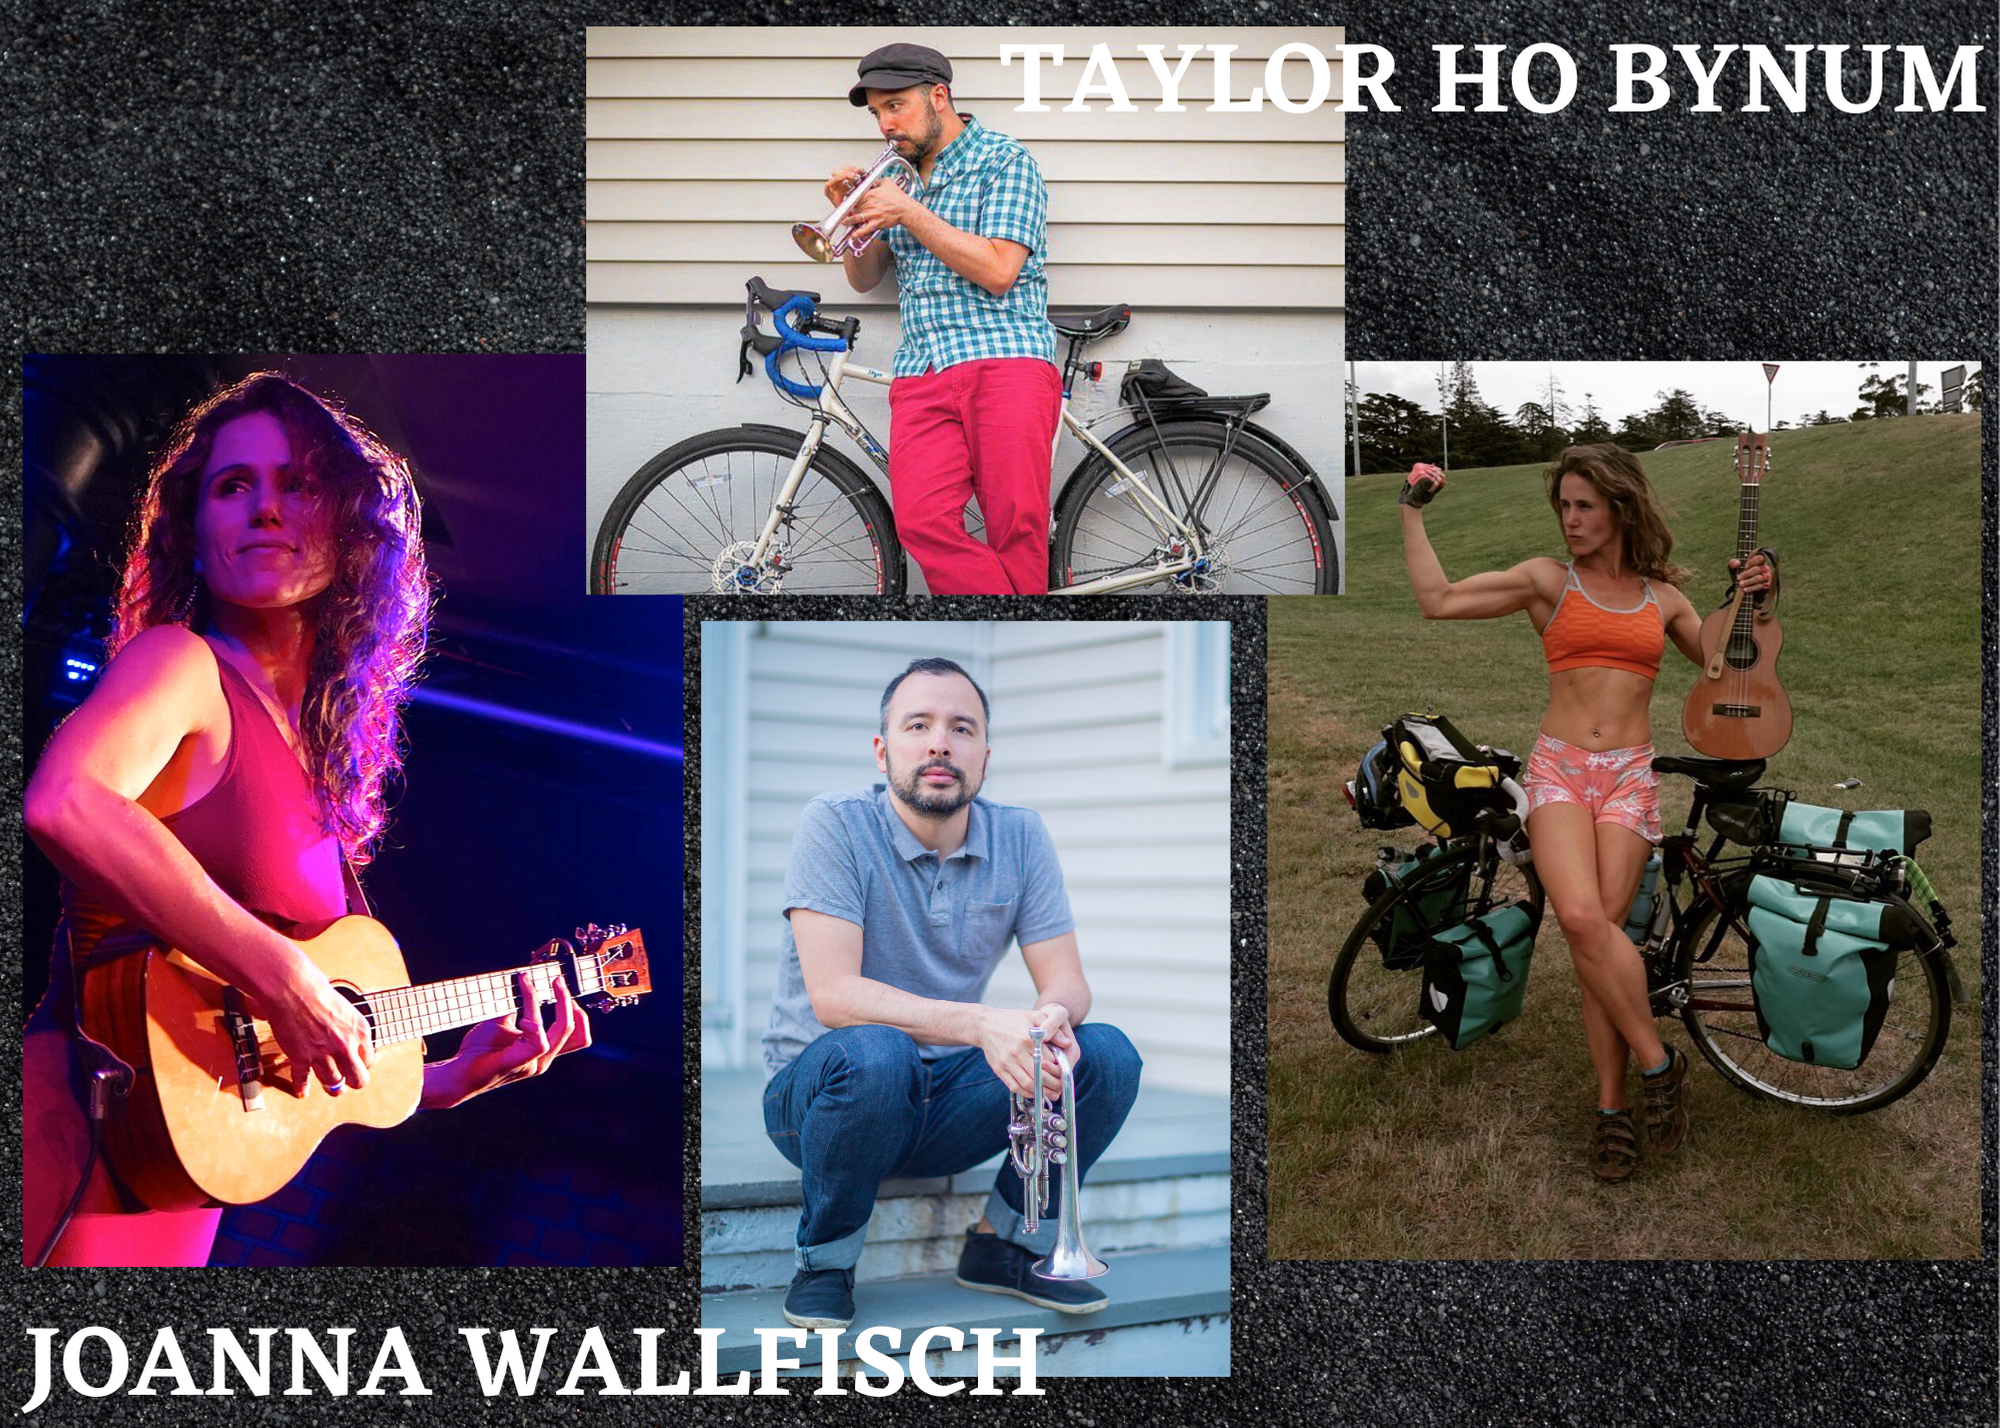 Joanna Wallfisch & Taylor Ho Bynum: Music, Bicycles, Talk And Documentaries!